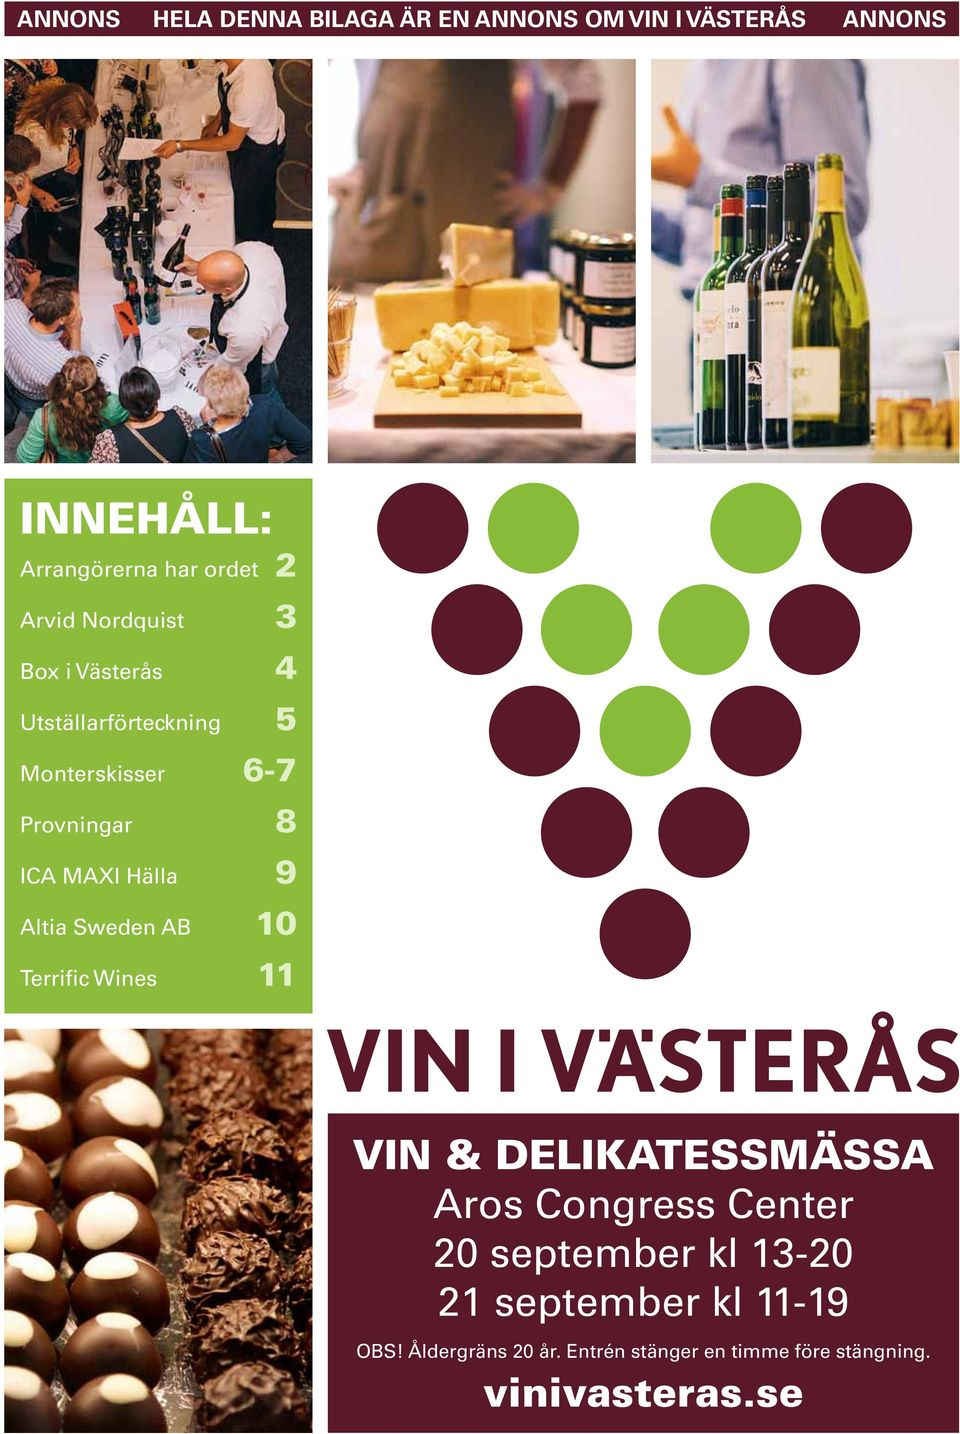 AB 10 Terrific Wines 11 VIN & DELIKATESSMÄSSA Aros Congress Center 20 september kl